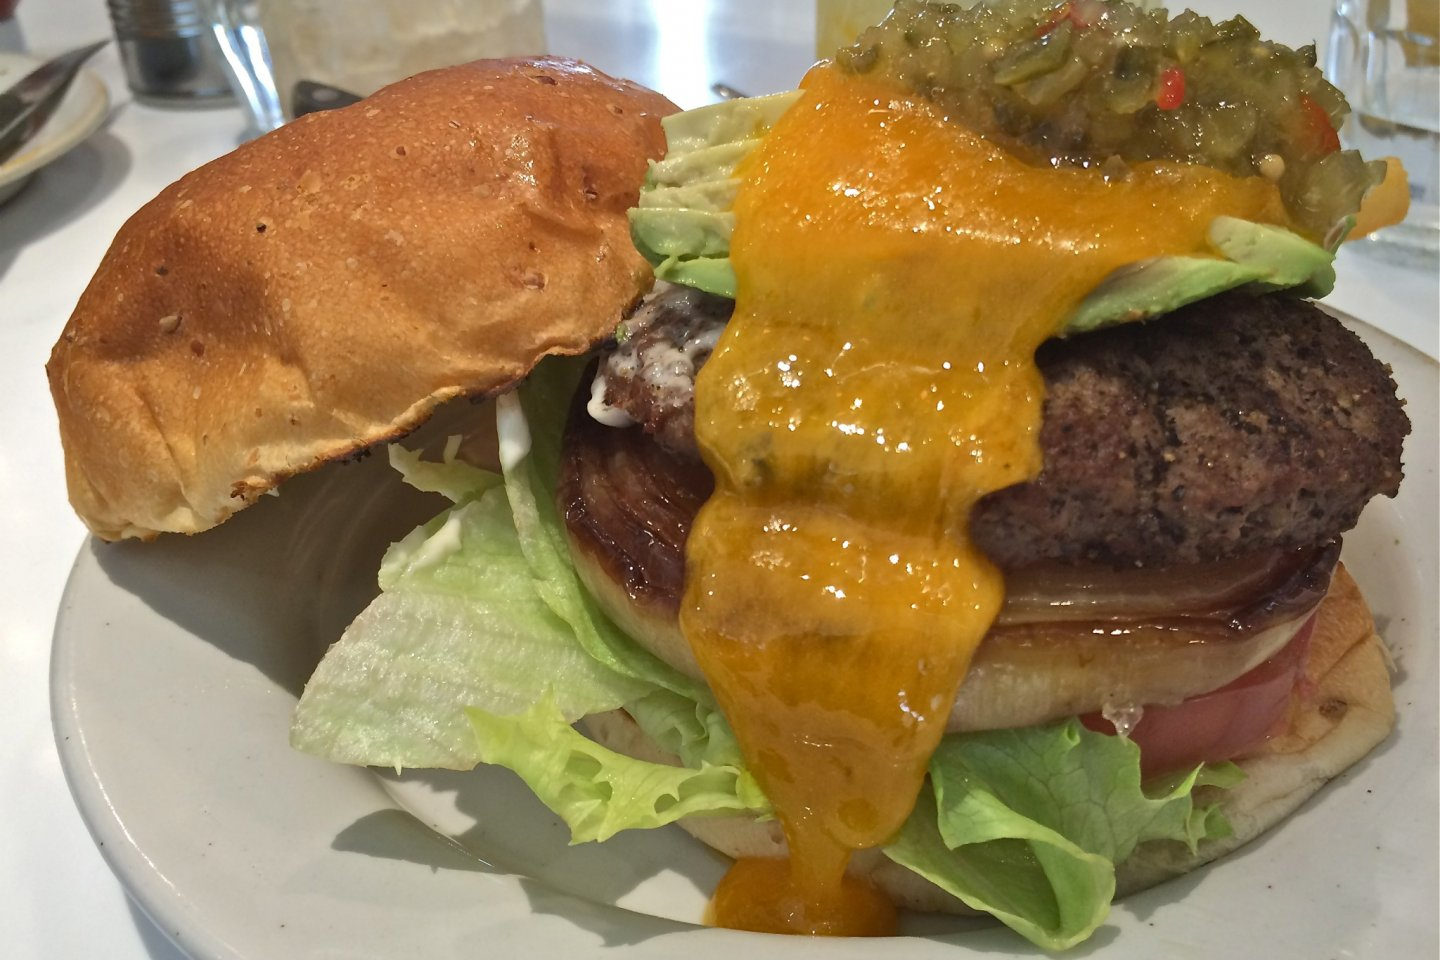 The J.S. Burger is topped with relish, cheddar cheese, lettuce, tomato, and grilled onion. Mmm mmm mmm!